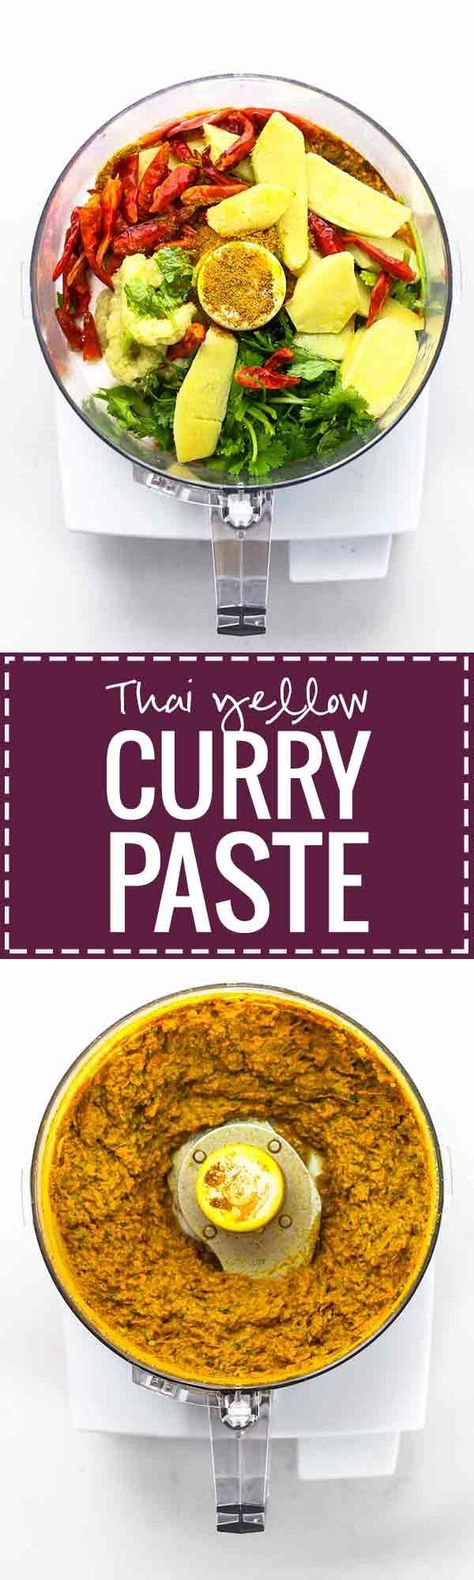 Easy Thai Yellow Curry Paste - made with ingredients that can be found at almost any grocery store! This easy recipe takes 45 minutes and gives you enough curry paste for 4+ batches of curry, and it freezes perfectly. Vegan! | pinchofyum.com